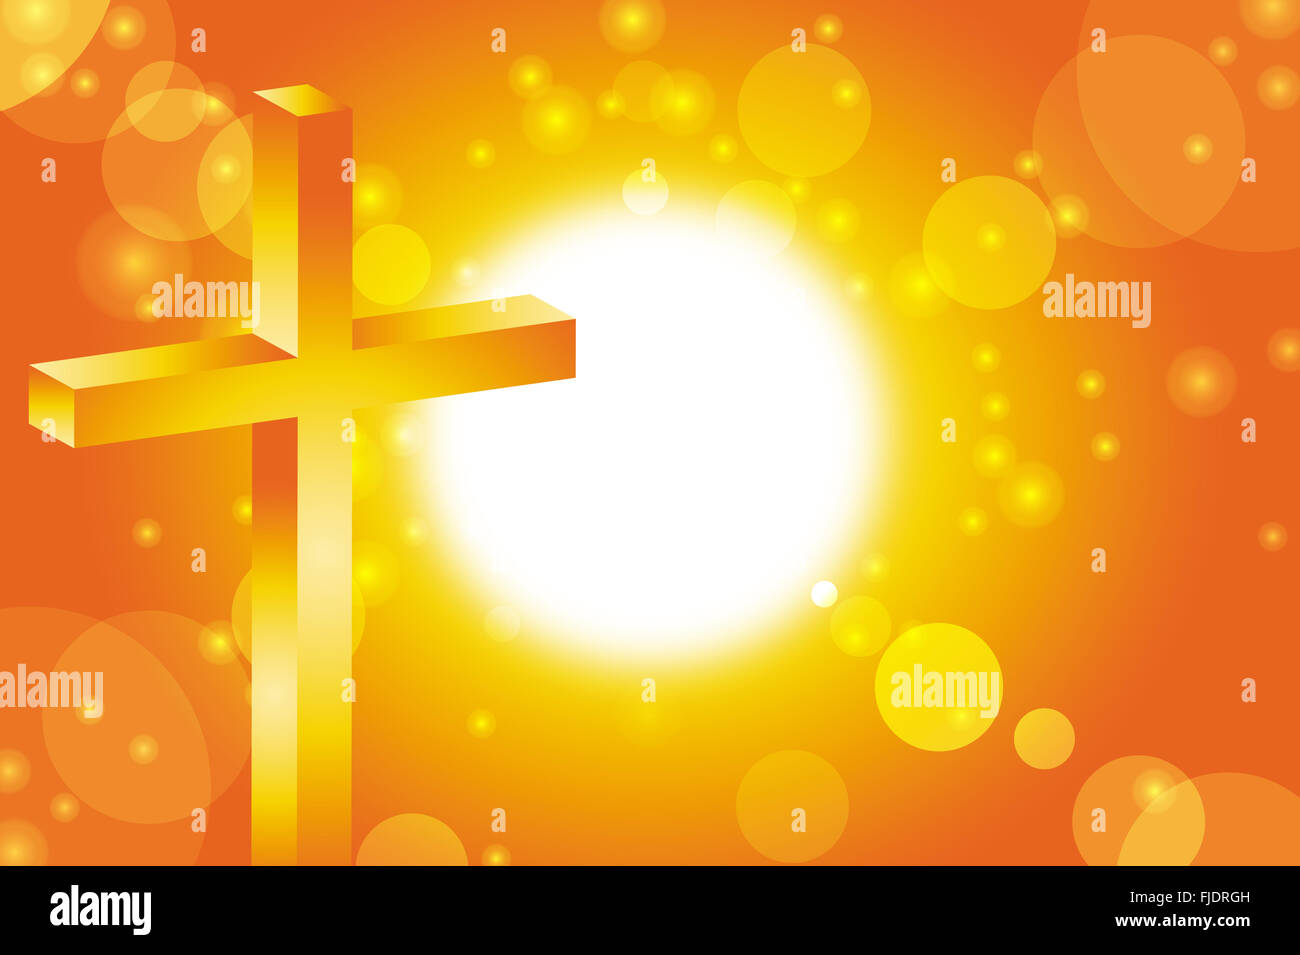 easter jesus cross christian in front of abstract orange